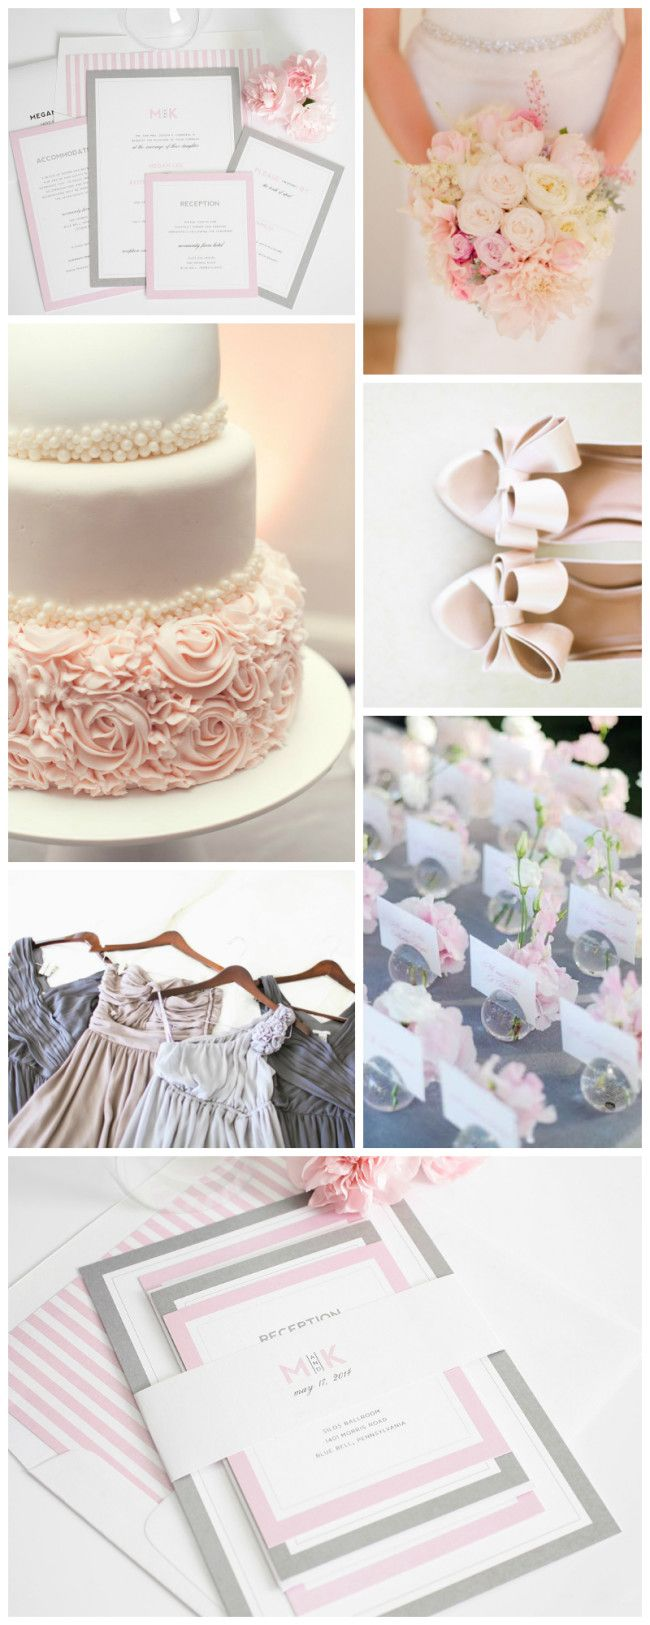 Gorgeous Pink and Grey Wedding Inspiration! Pink and Grey creates a soft romantic feel! #pinkandgreyweddinginspiration #pinkandgrey #pinkandgray